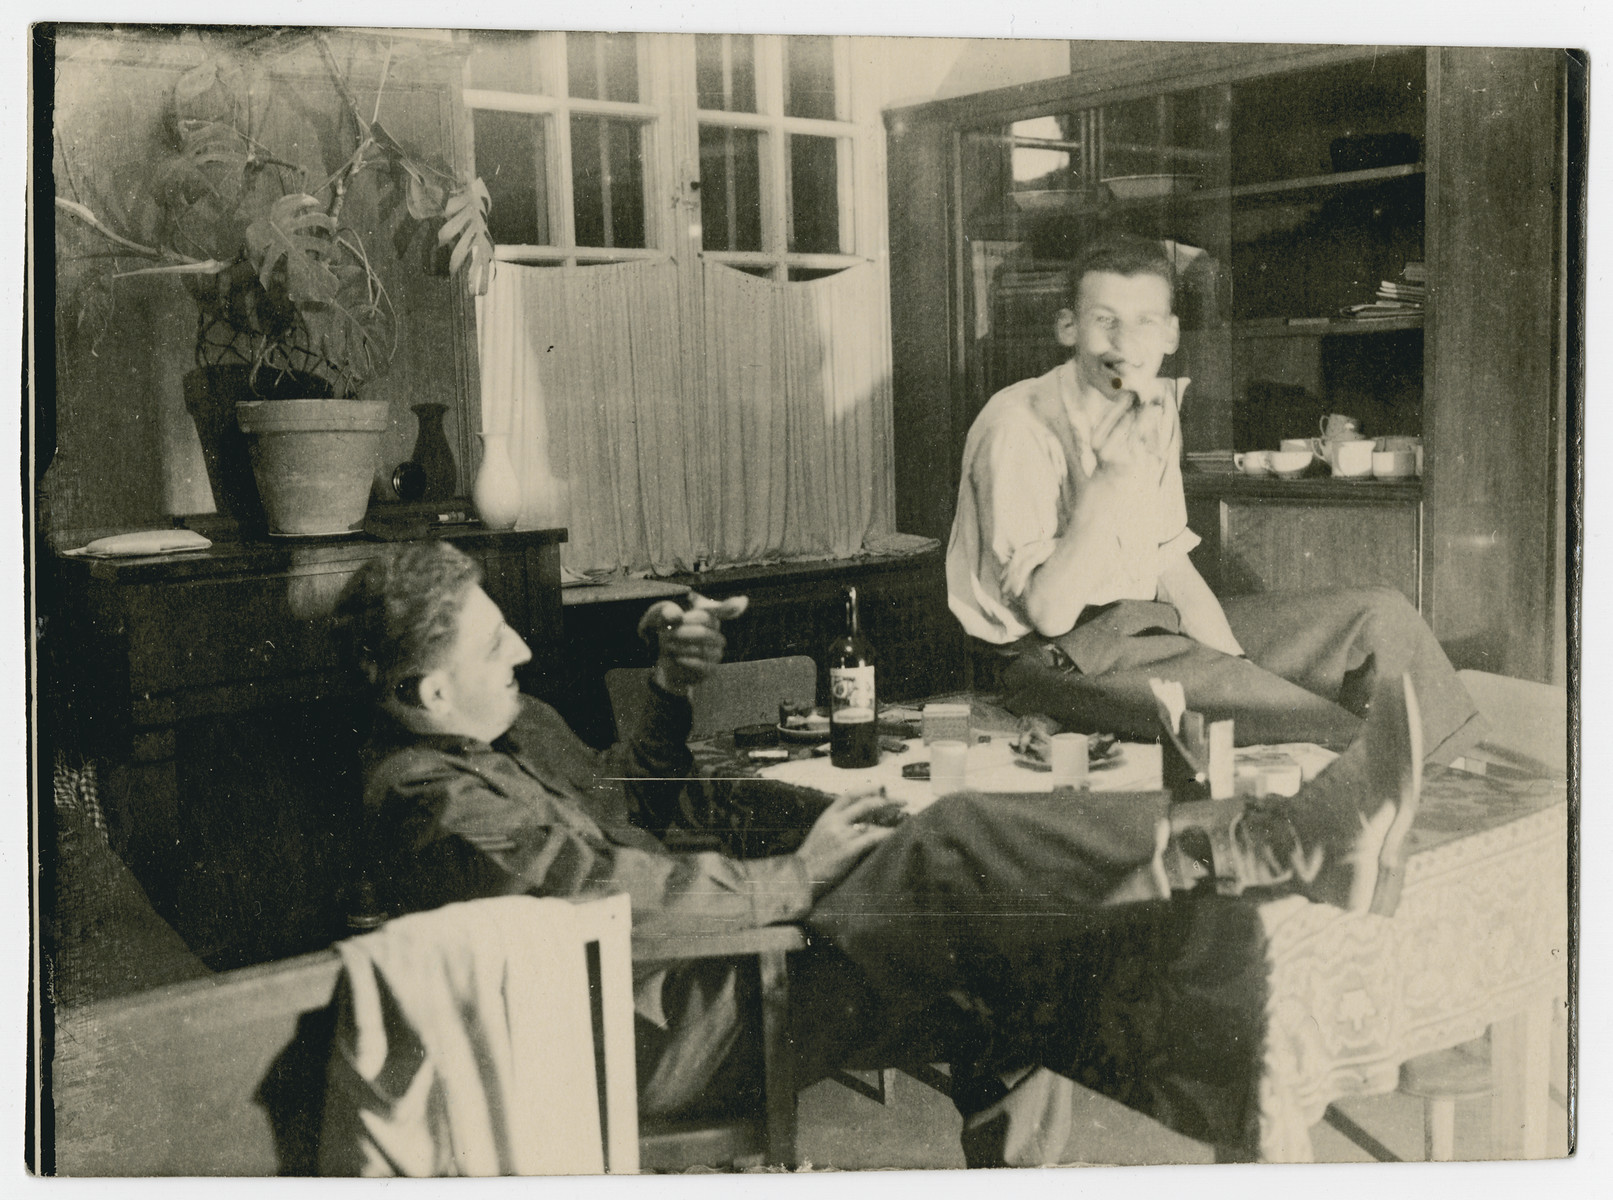 Norman Coulson relaxes in his quarters in the former Dachau concentration camp.    Seated on the right may be his assistant and former Polish prisoner Alfons.